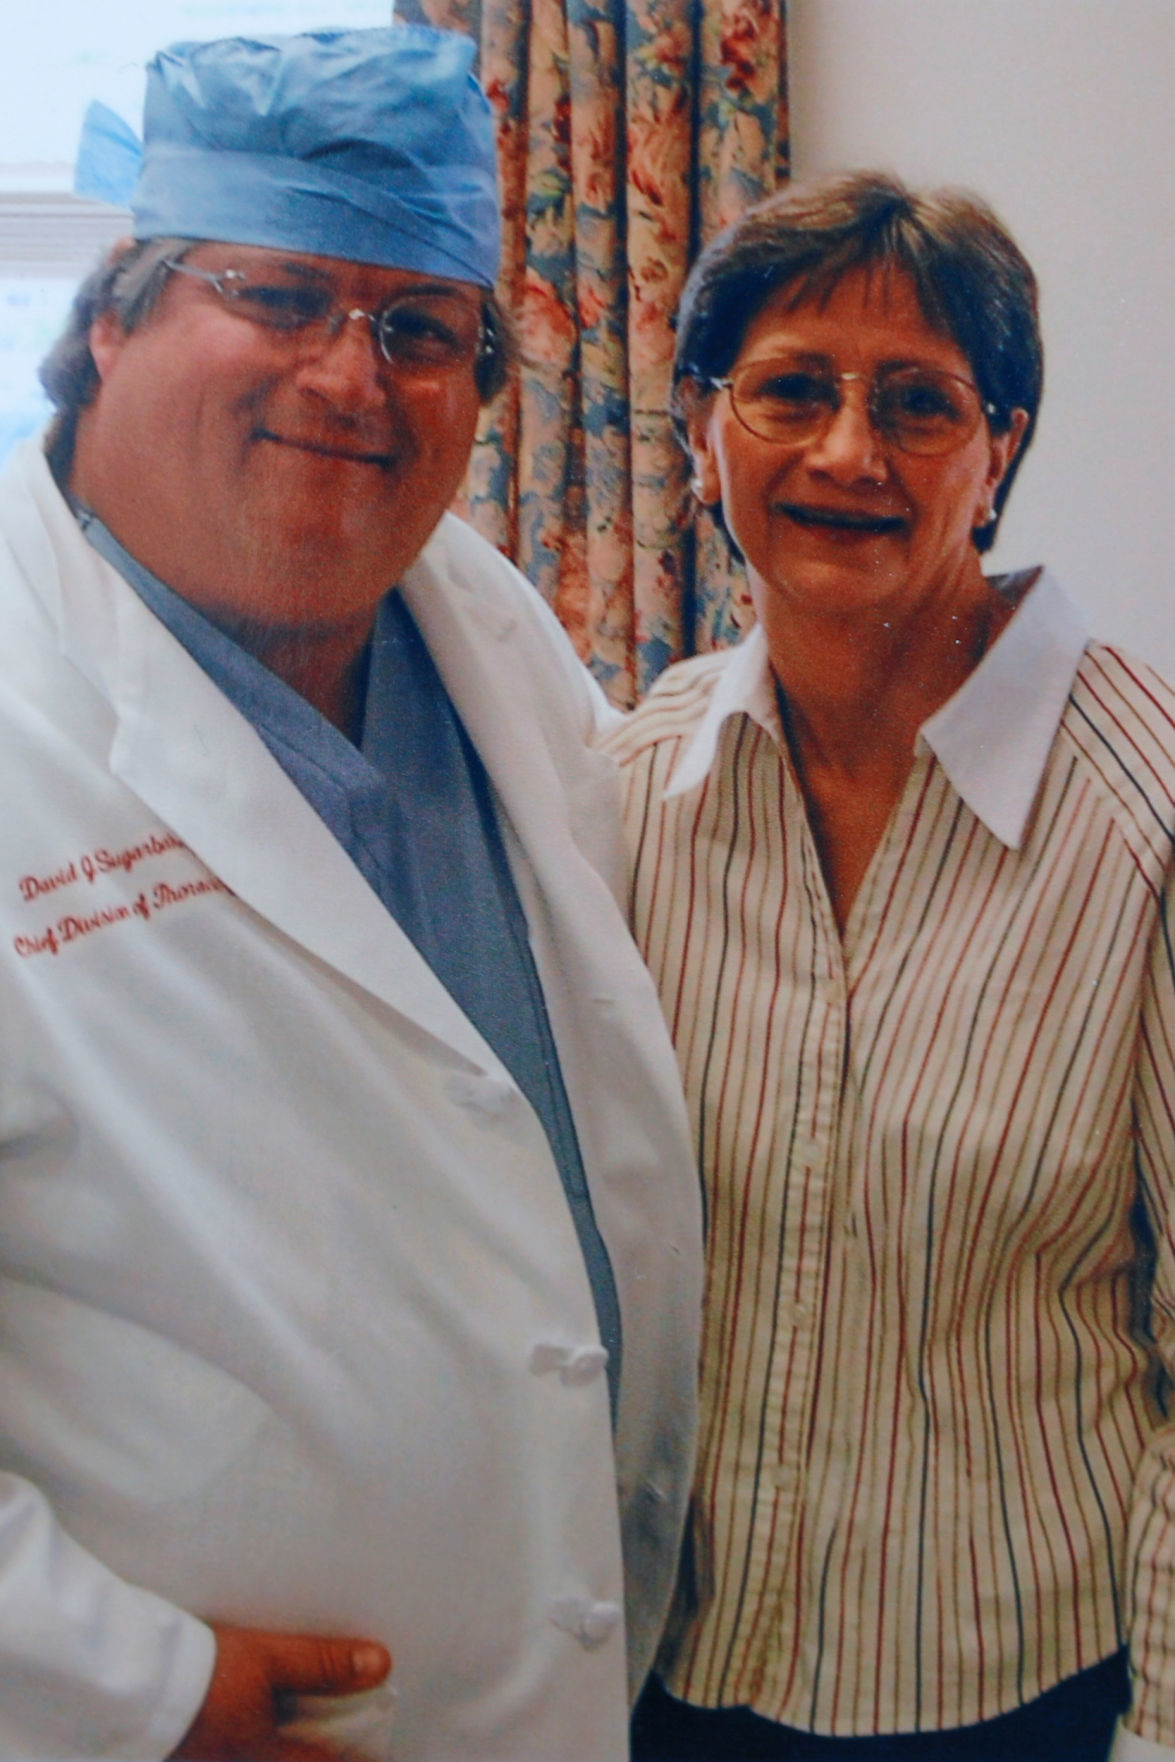 Darlene Coker is shown with her thoracic surgeon David Sugarbaker in this copy of a personal family photograph